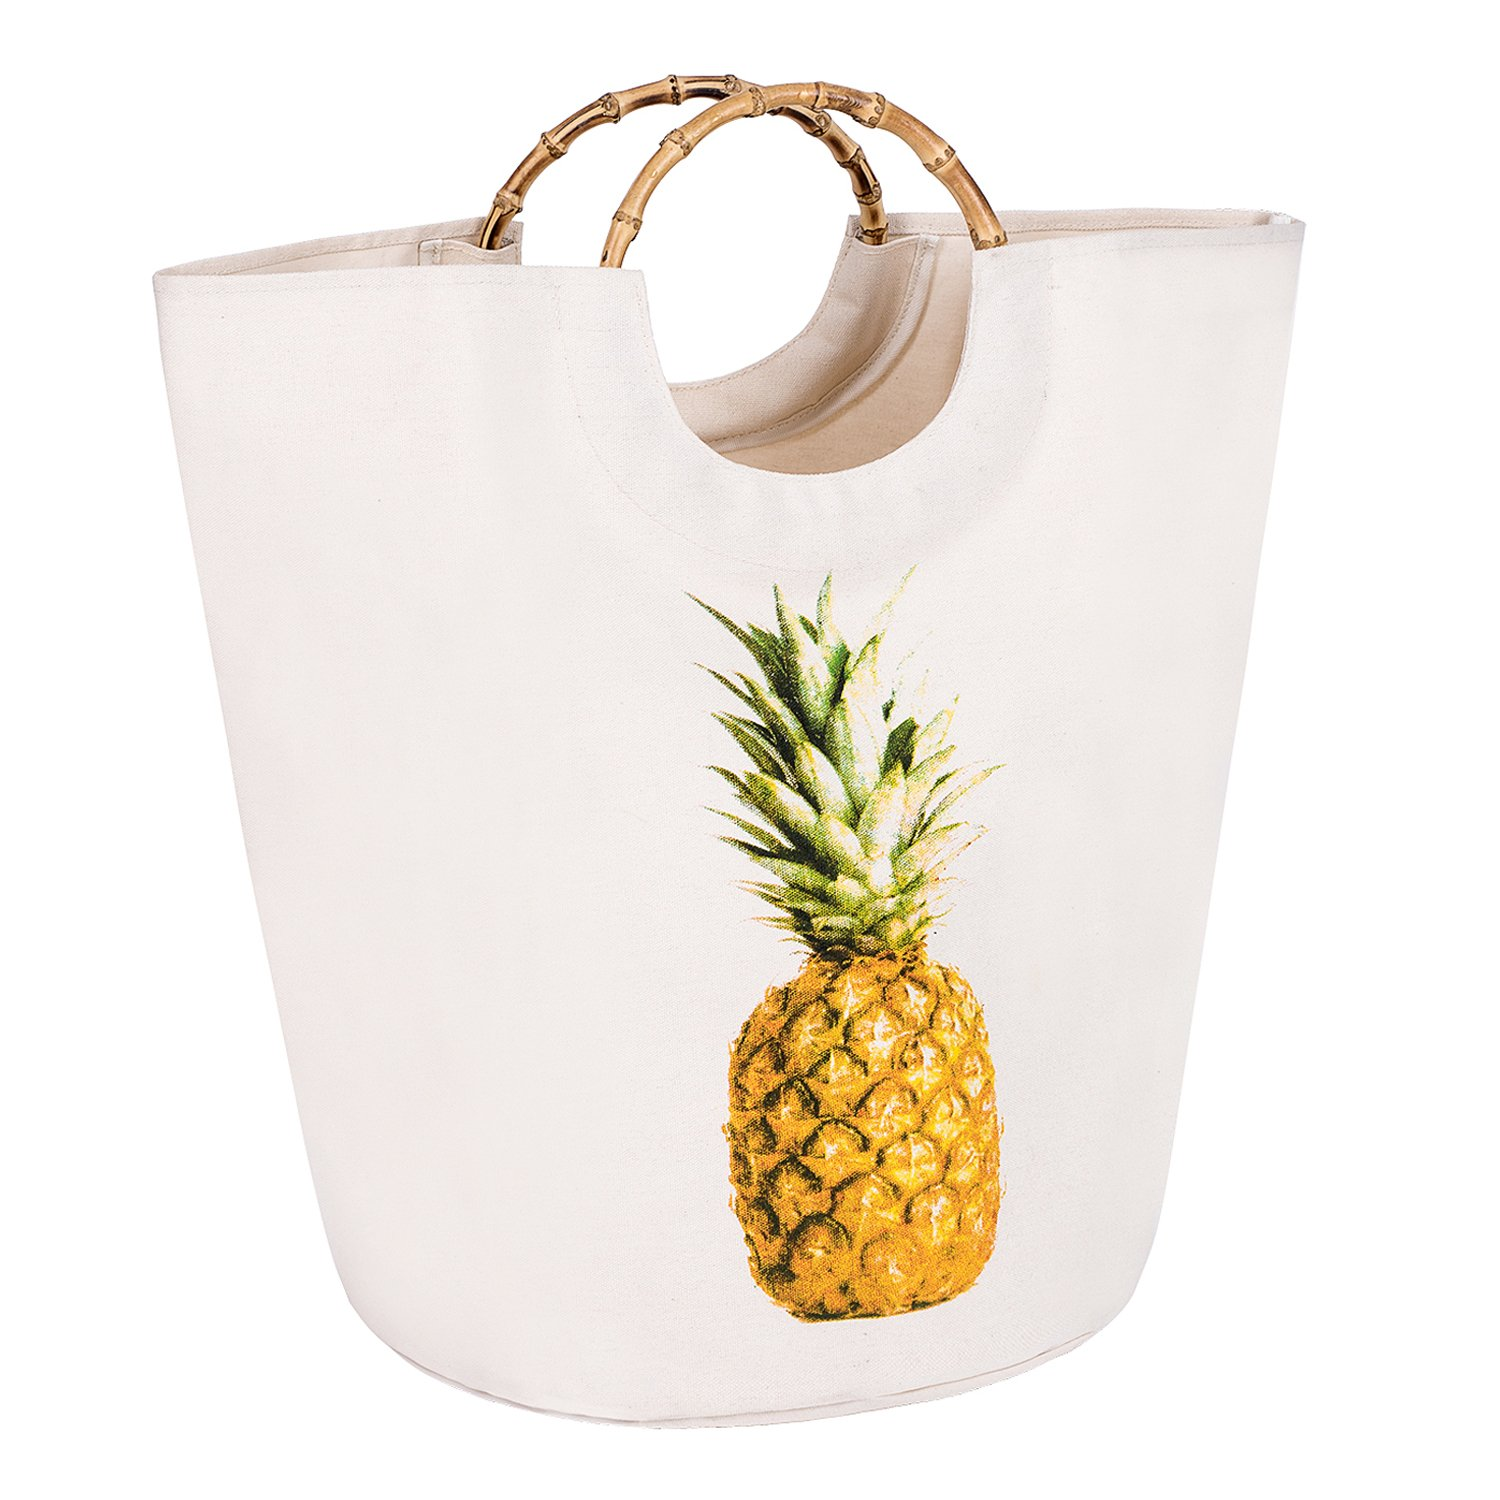 Collapsible Storage Basket - Round Foldable Canvas Fabric Storage bin with Bamboo Handles for Home Closet - Decorative Off-white/Pineapple for Organizing Clothes, Kids Rooms, Toys, Laundry, Gifts